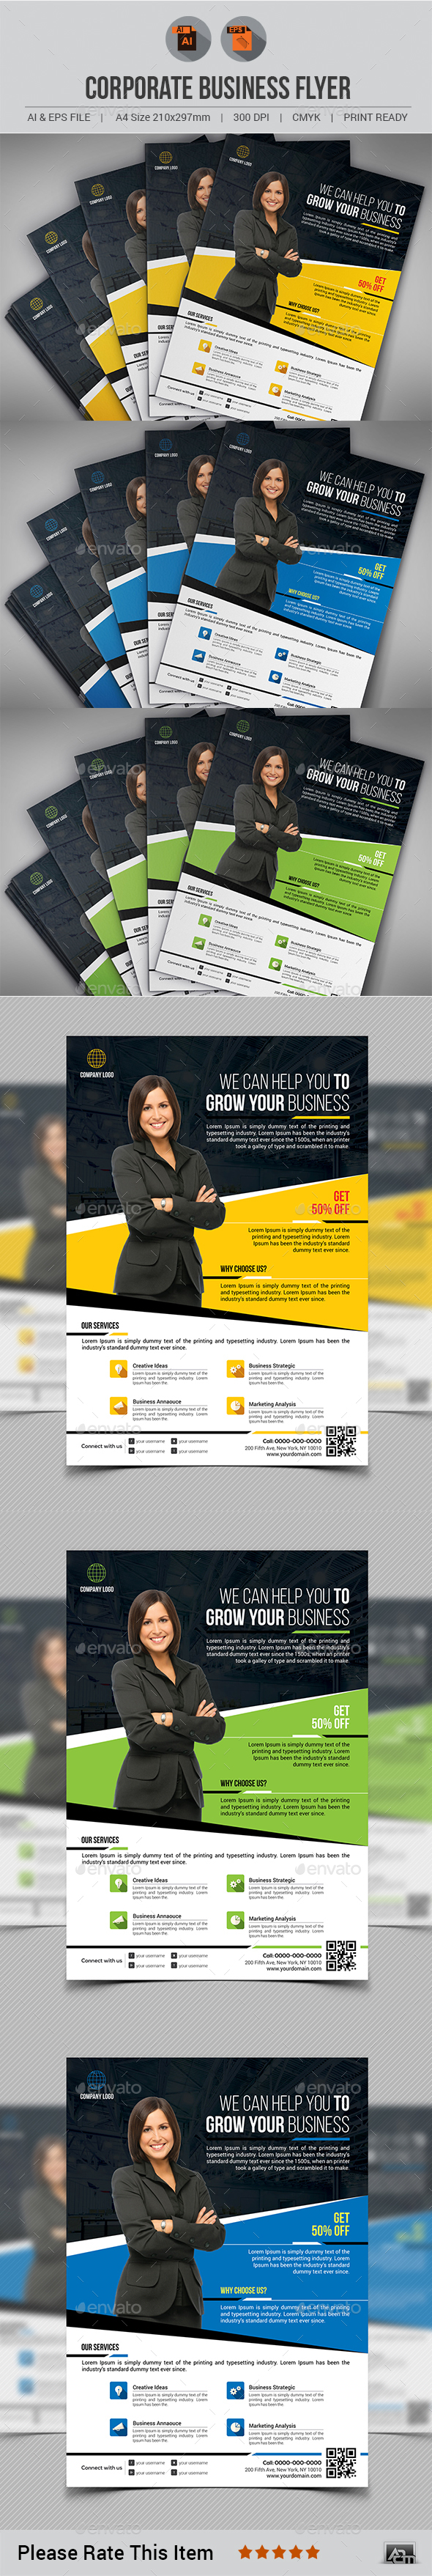 Corporate Business Flyer Template V3 - Corporate Flyers